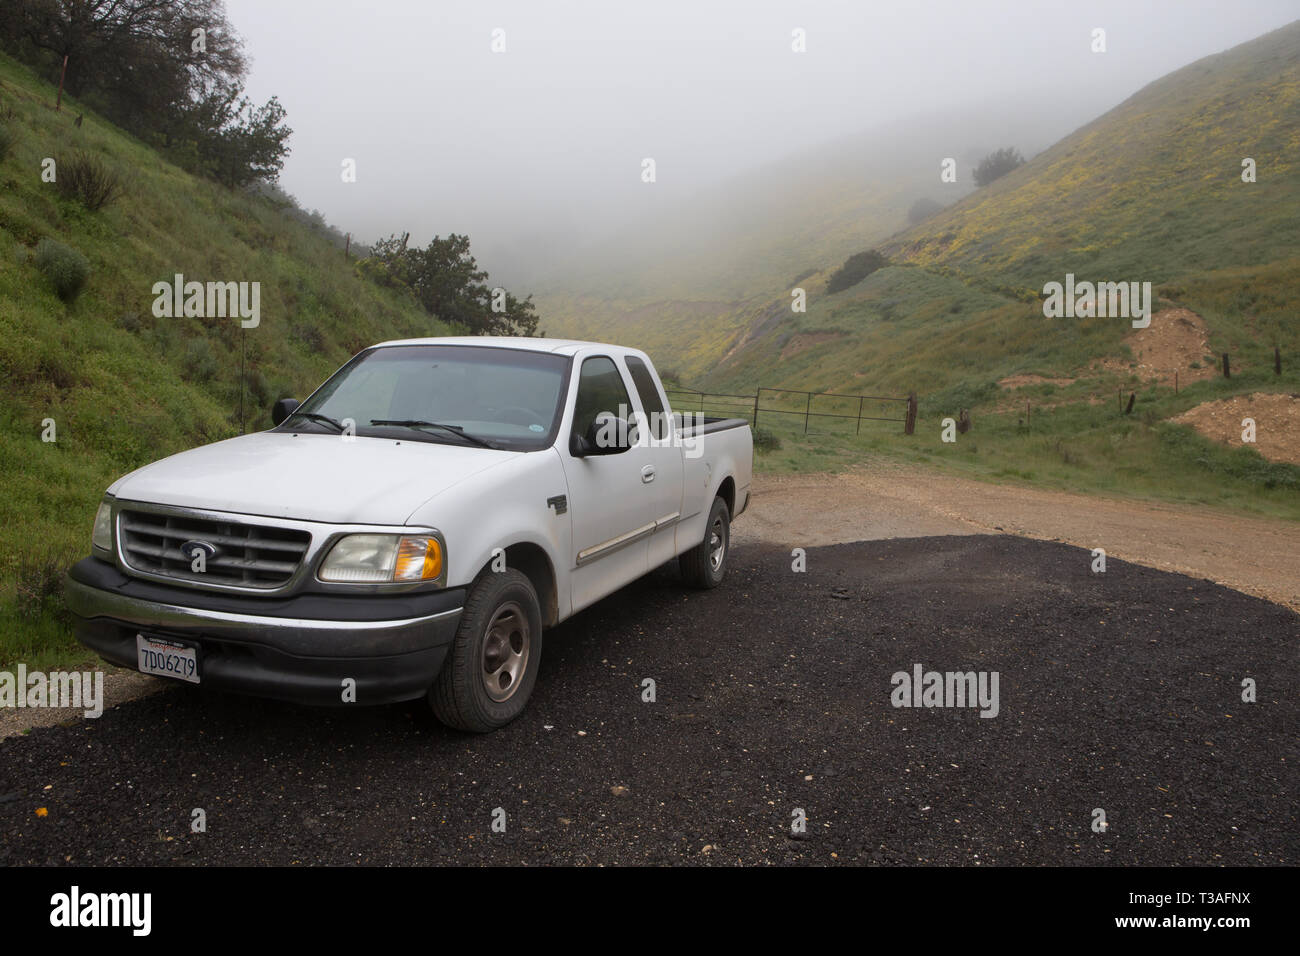 White Ford F150 Pickup Truck Parked Alongside A Turnout On A Road Stock Photo Alamy